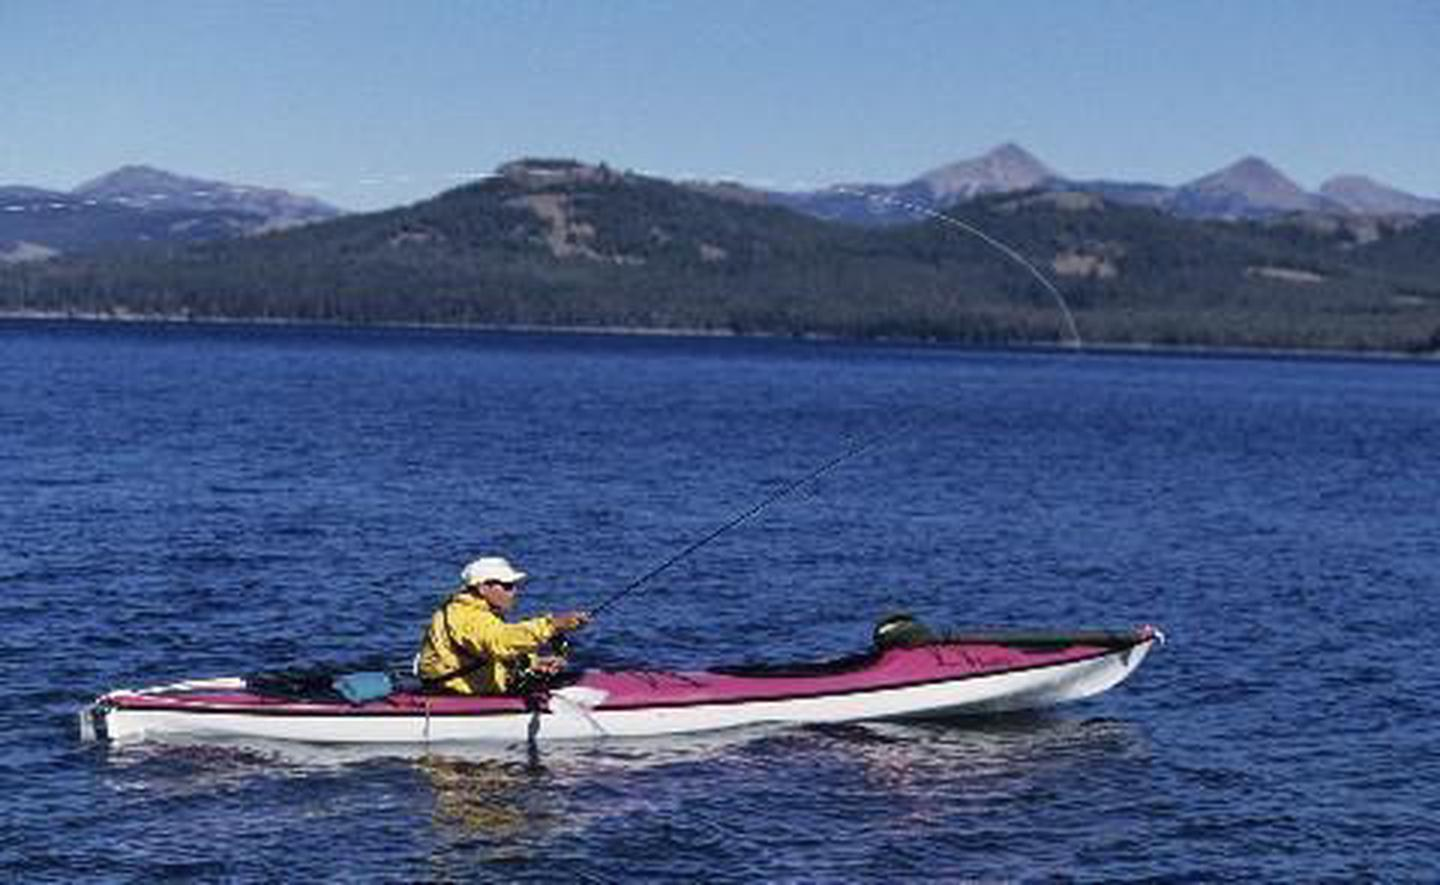 Lake YellowstoneFishing, boating and water sports are some of the activities available on more than 7,000 feet.